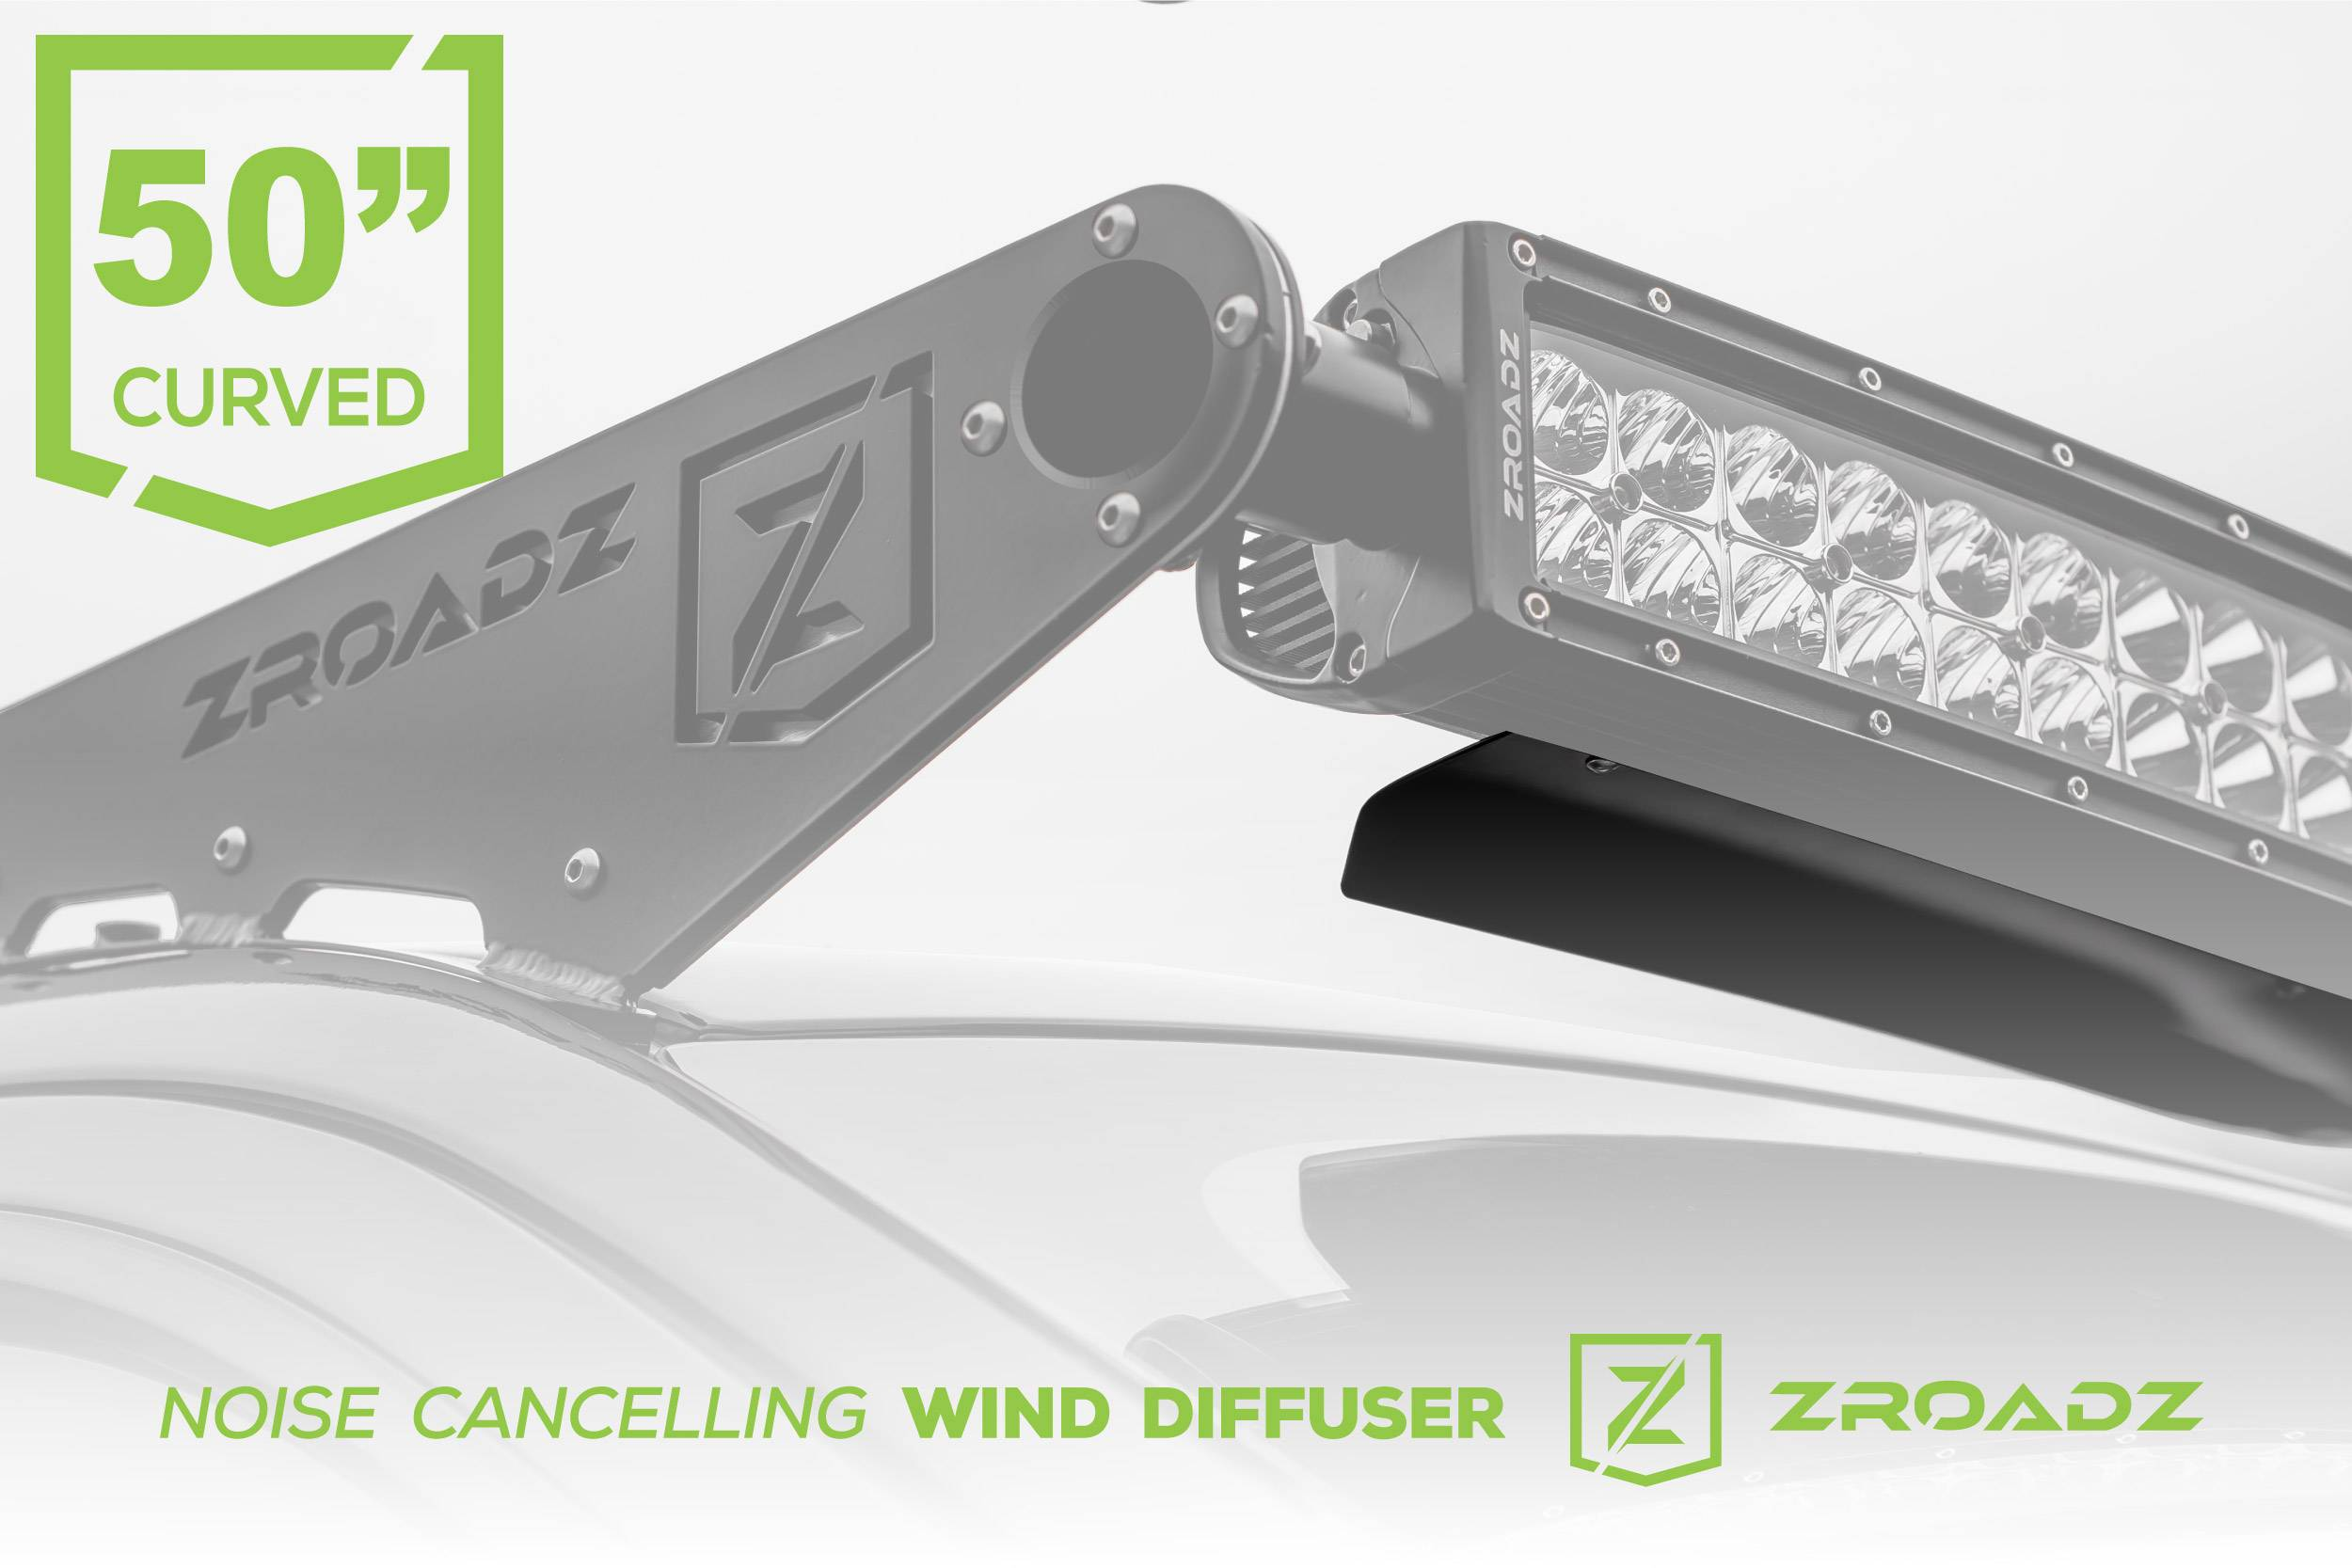 ZROADZ                                             - Noise Cancelling Wind Diffuser for (1) 50 Inch Curved LED Light Bar - PN #Z330050C